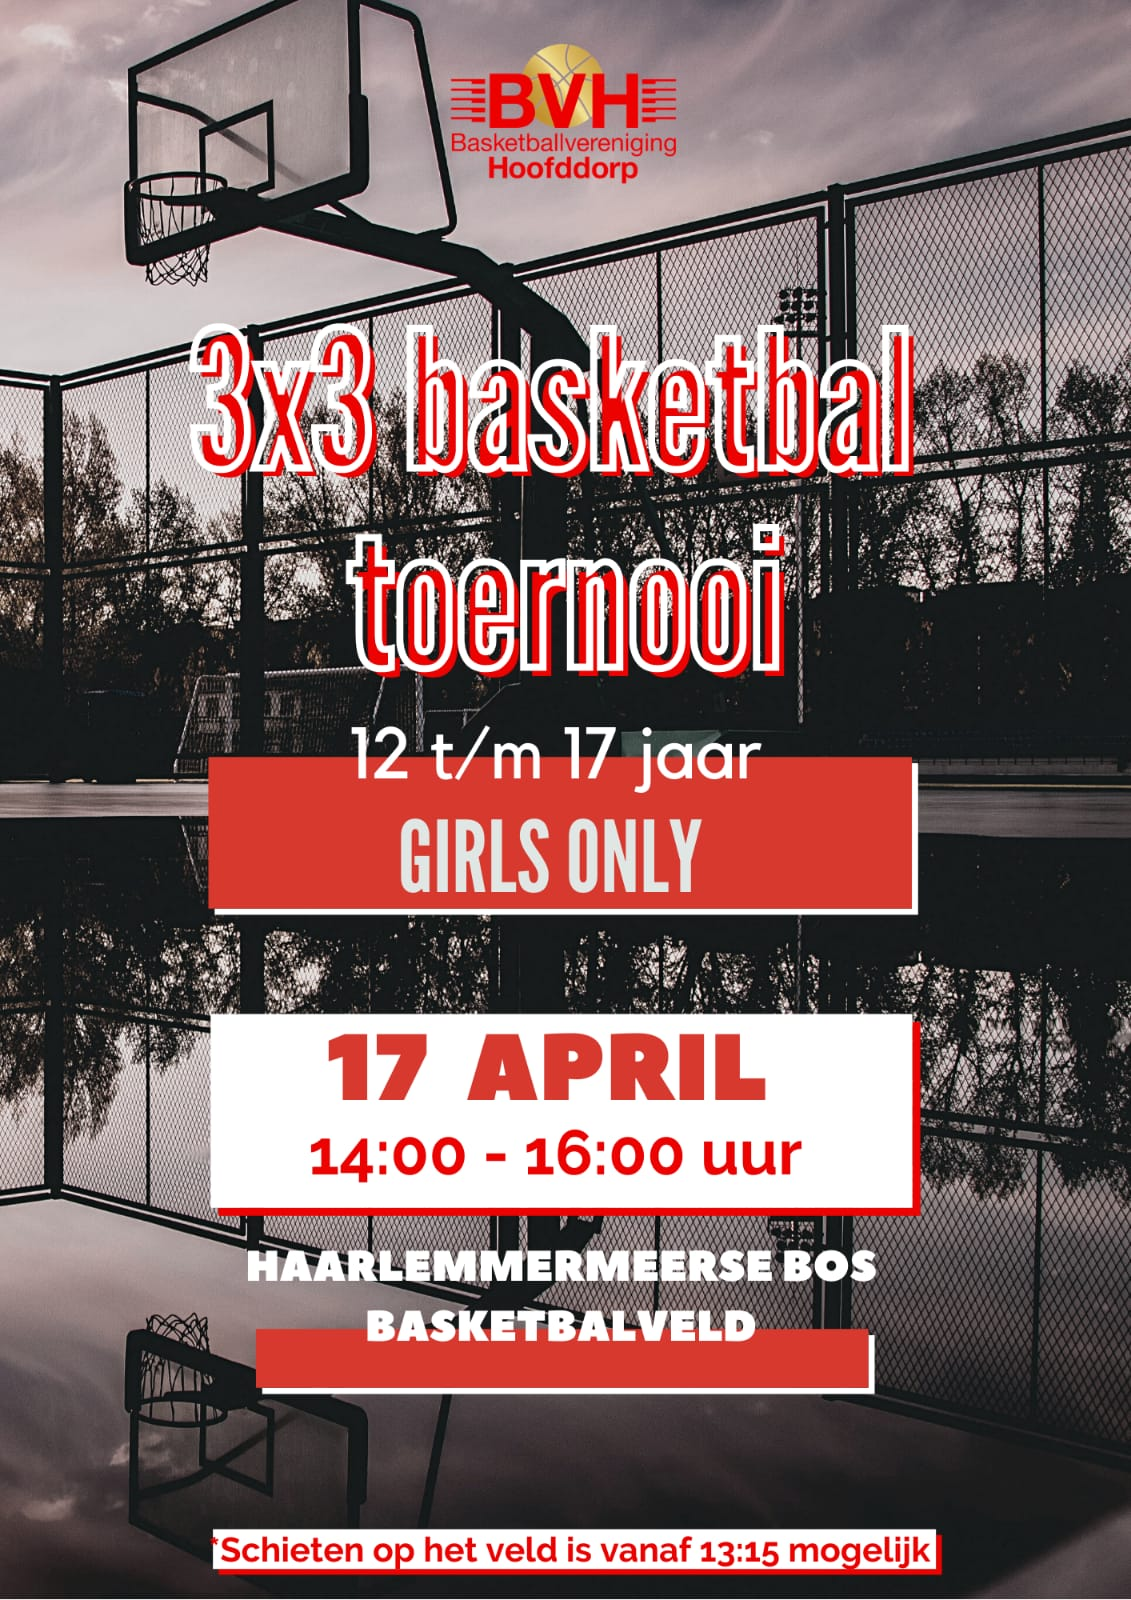 3x3 Girls only basketbal toernooi op 17 april